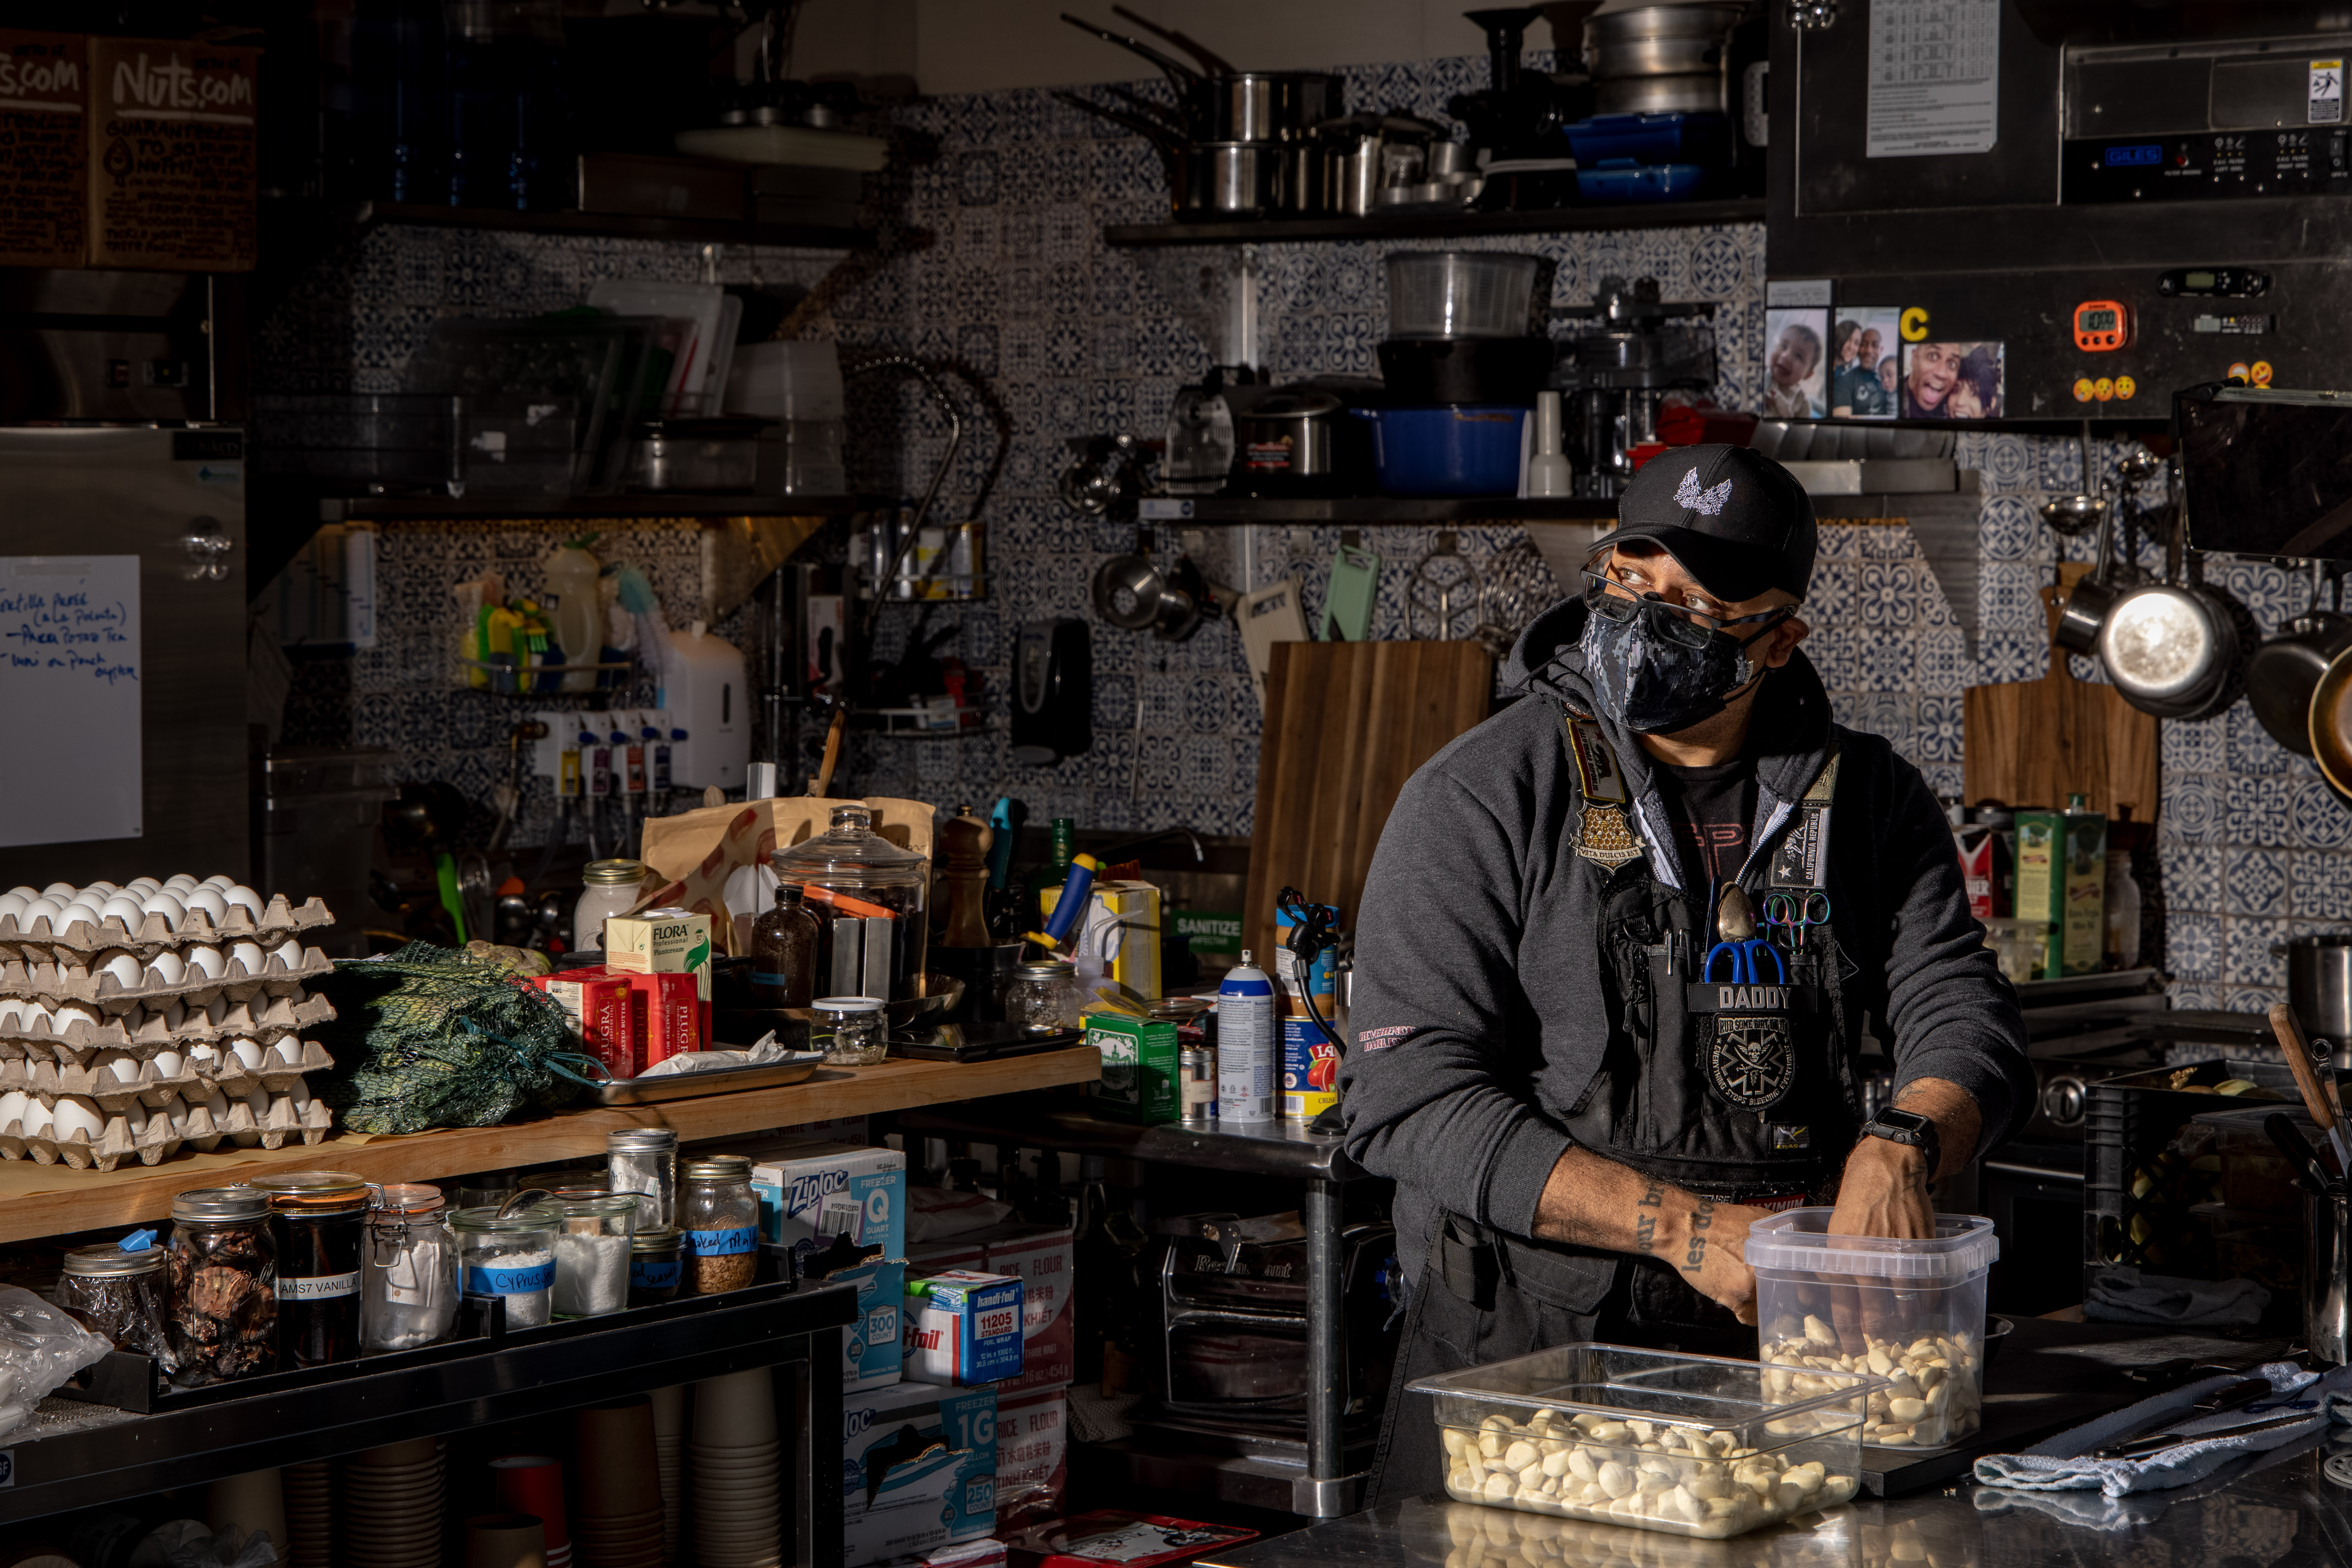 A man dressed in all black with various patches on his uniform picks through a tub of garlic cloves against a crowded kitchen backdrop